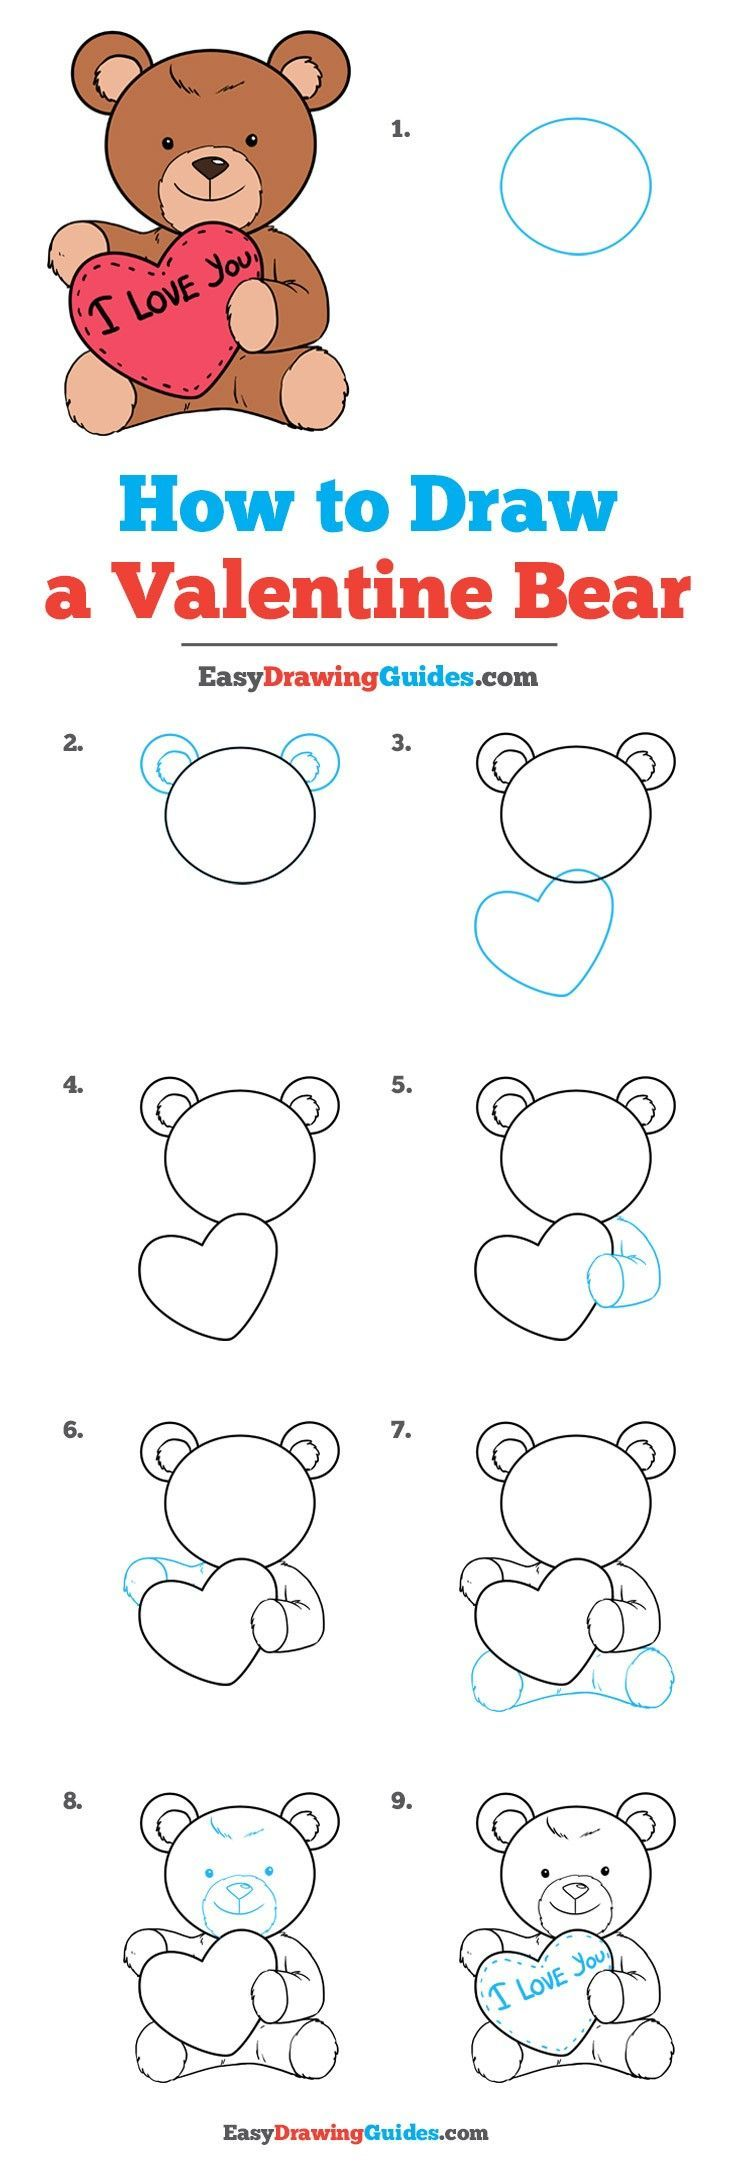 bear teddy draw valentine easy drawing heart valentines drawings tutorial tutorials beginners learn easydrawingguides step really steps things flowers dessin